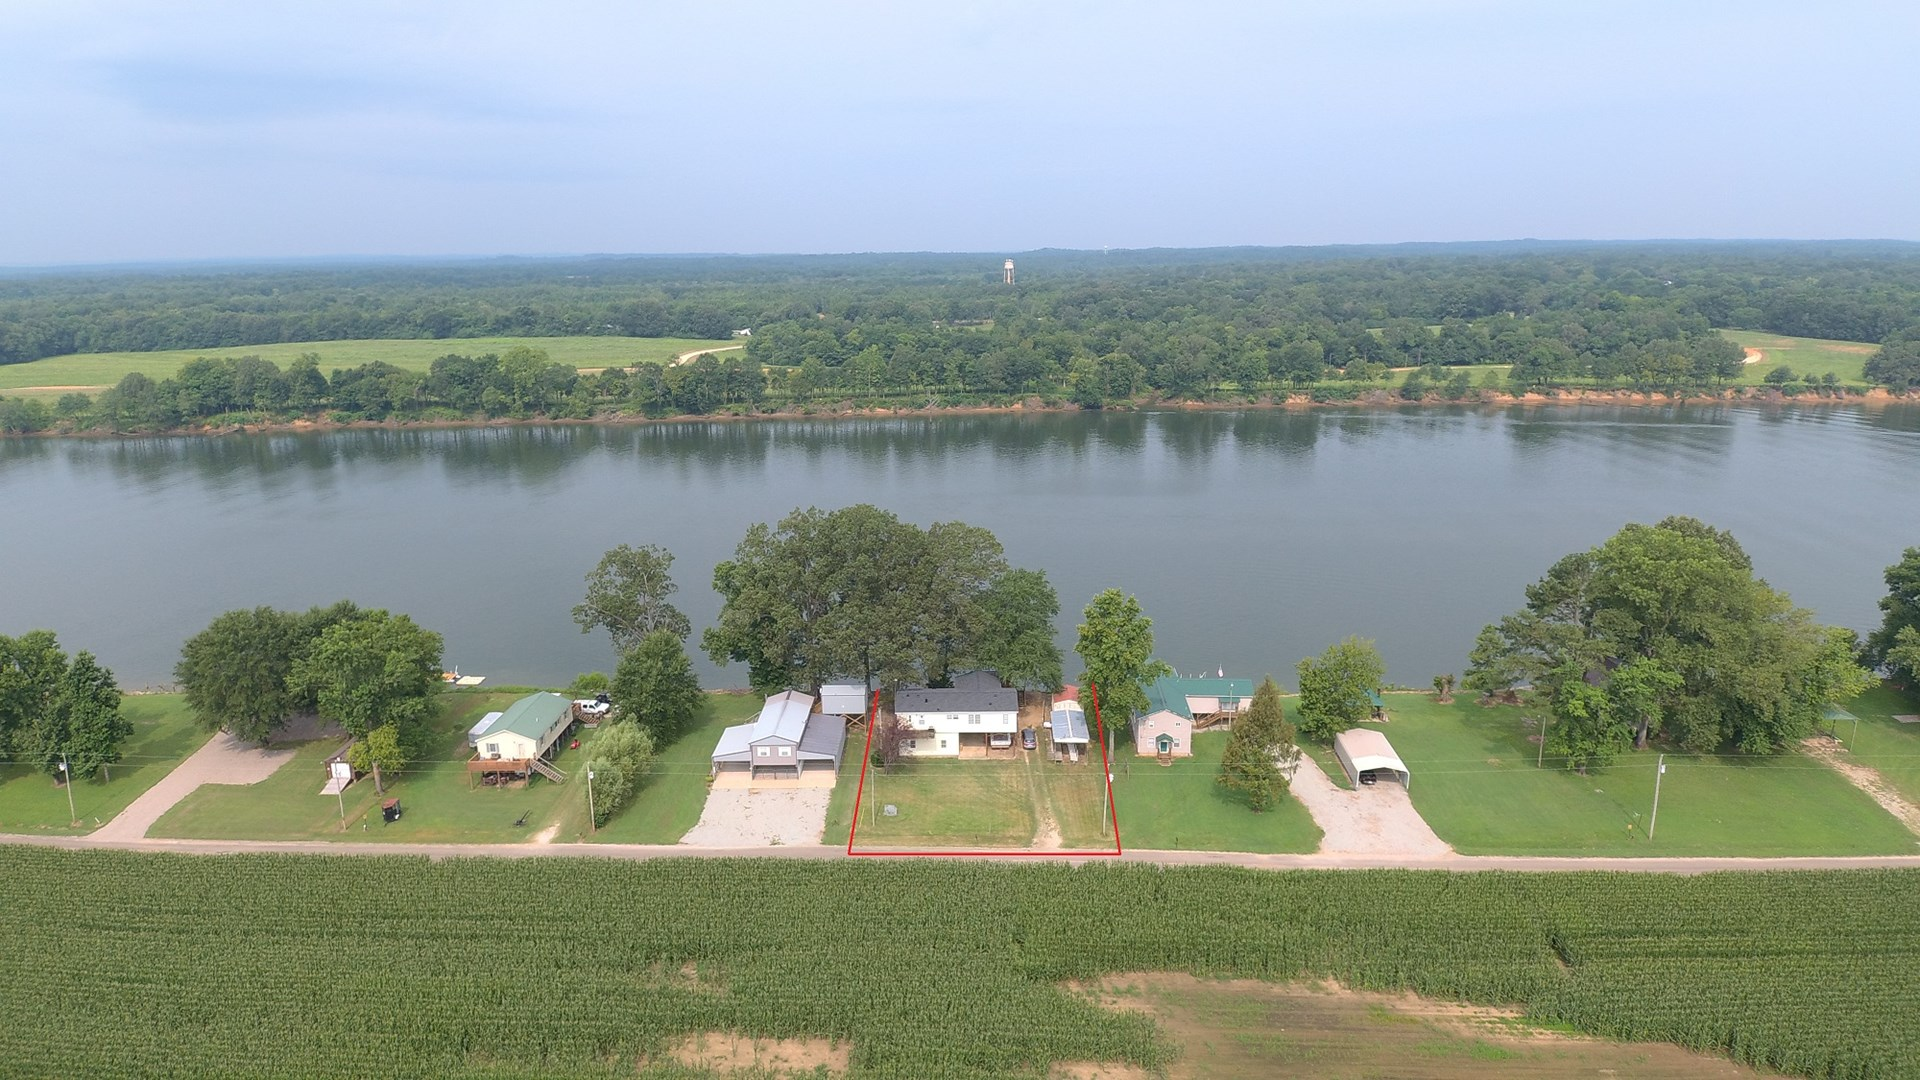 TENNESEE RIVER FRONT HOME FOR SALE IN HARDIN COUNTY